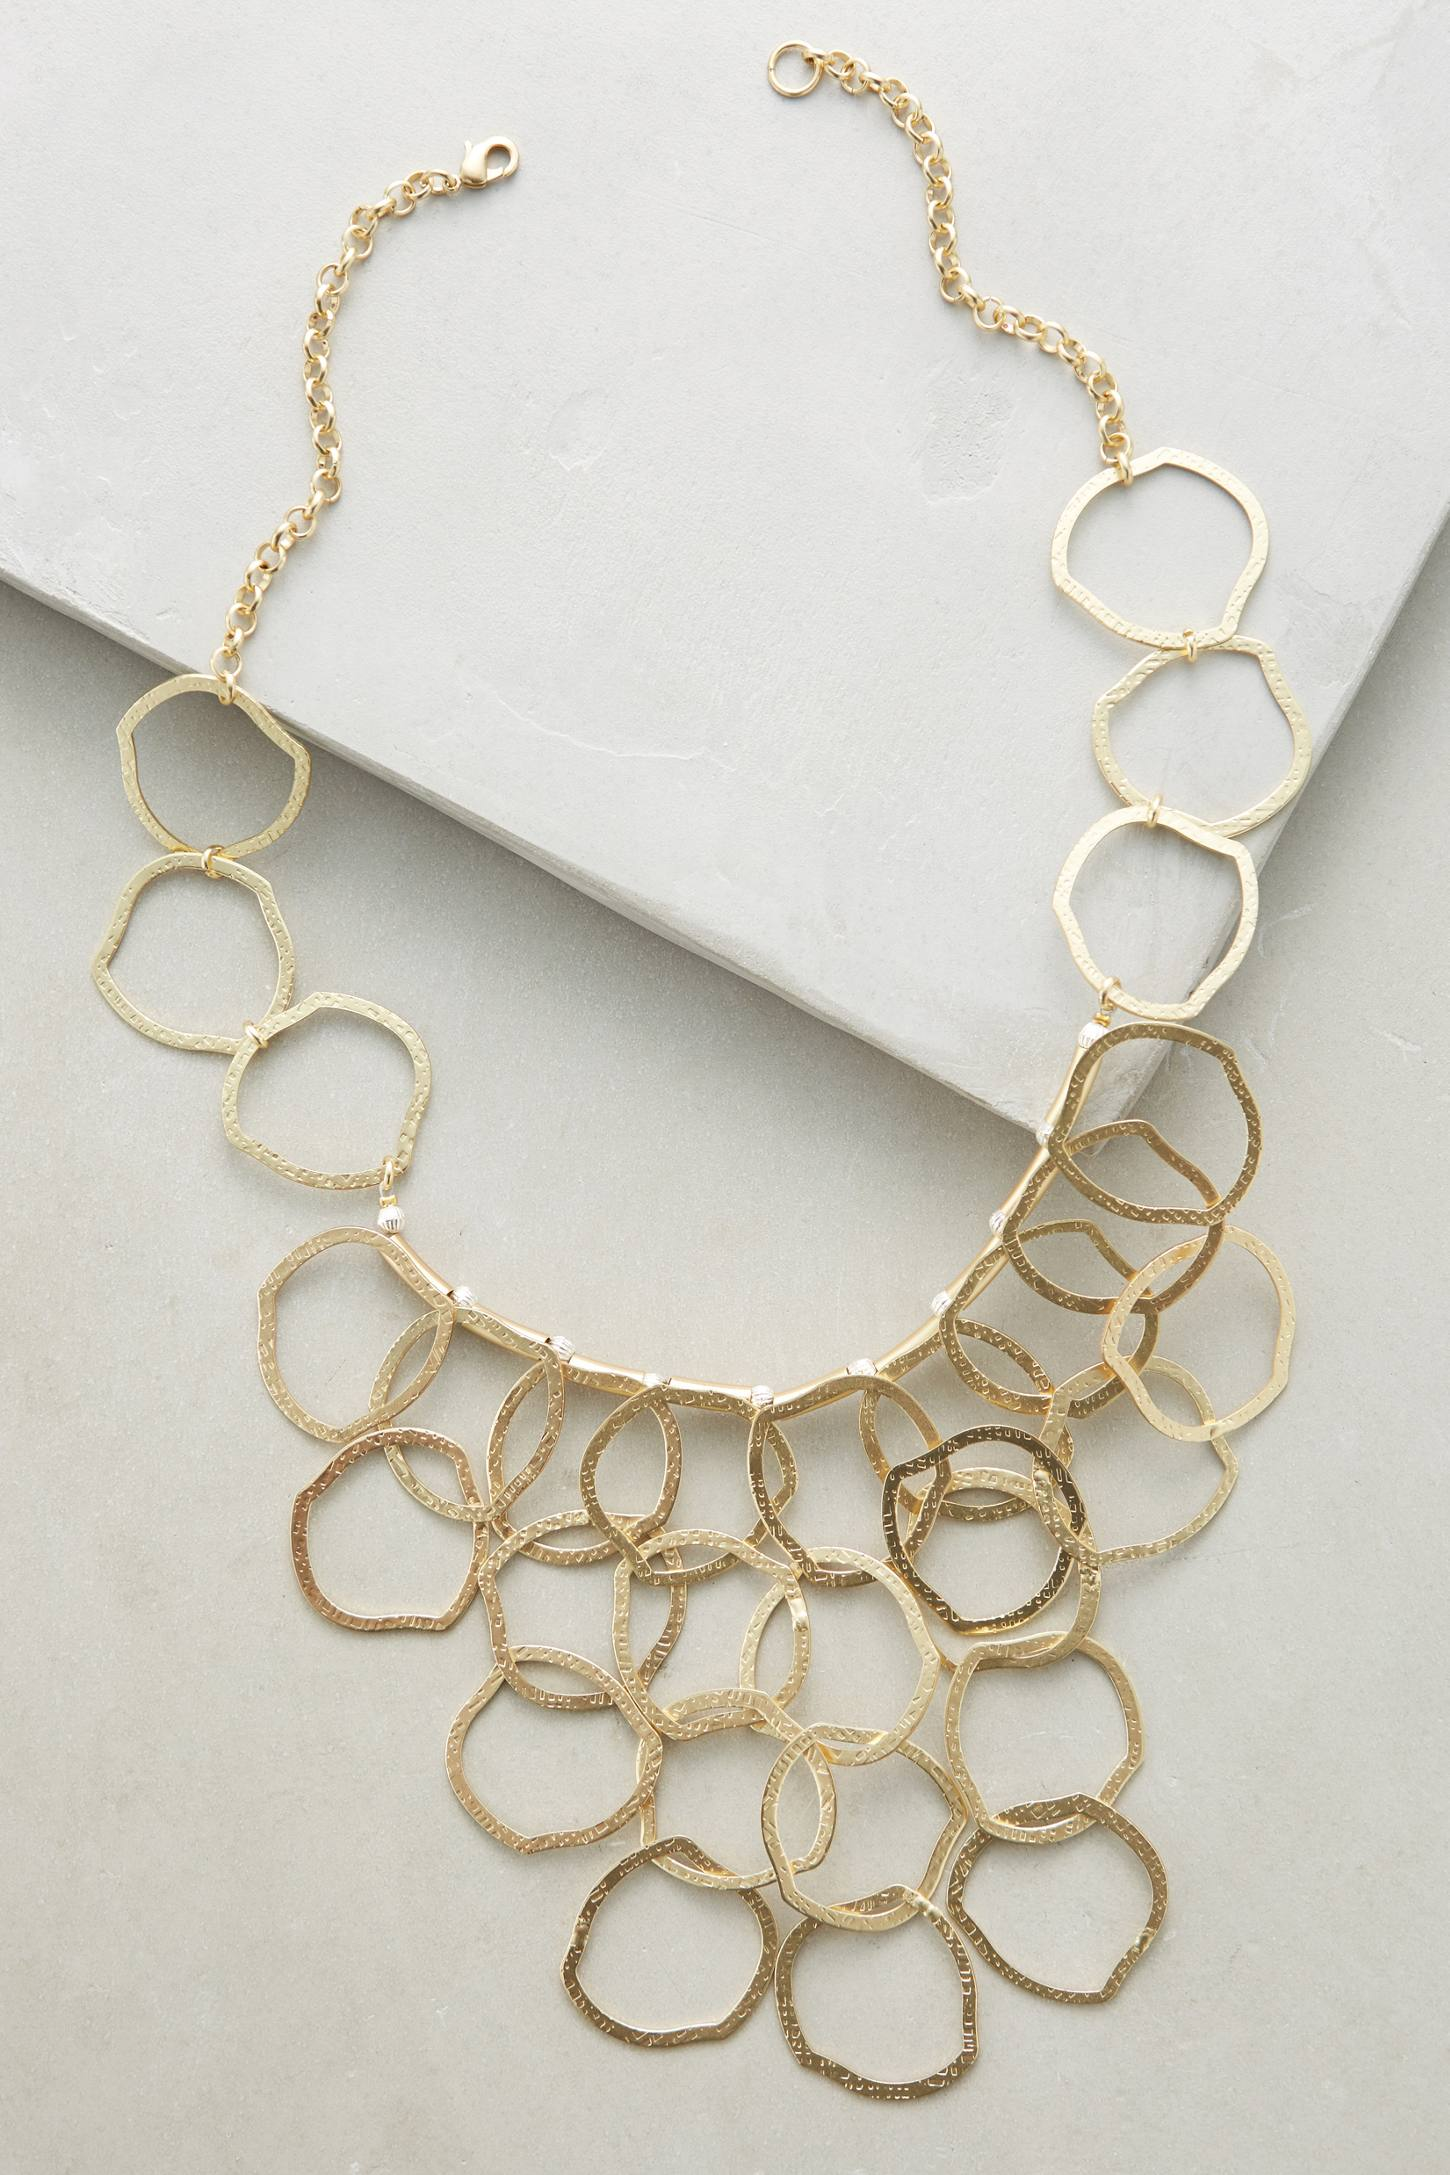 Stone Harbor Bib Necklace